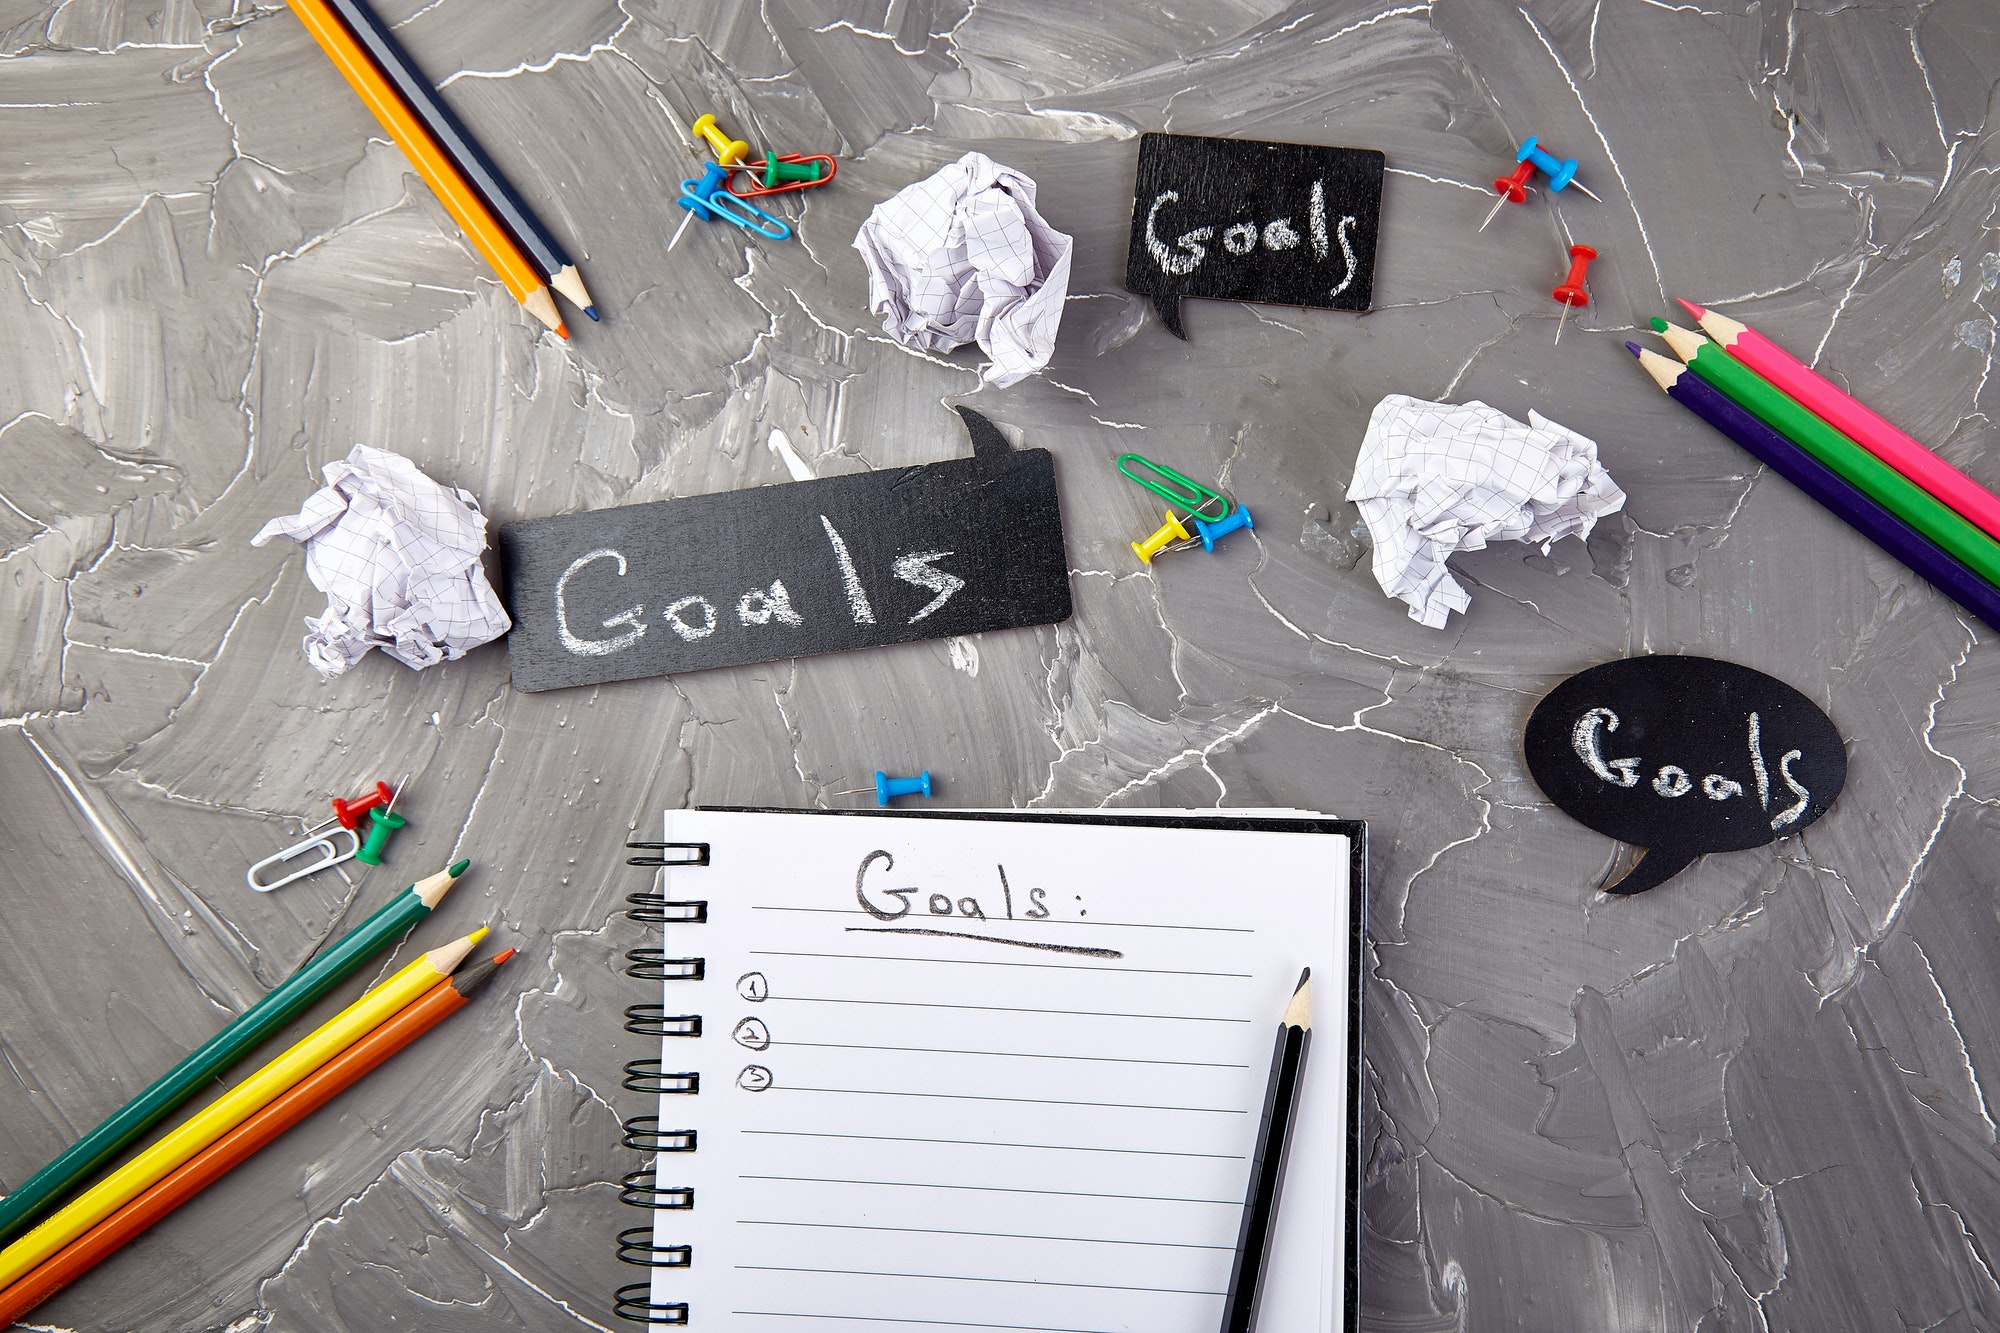 A notepad for writing down goals, with pencils and scrunched up paper around the notepad